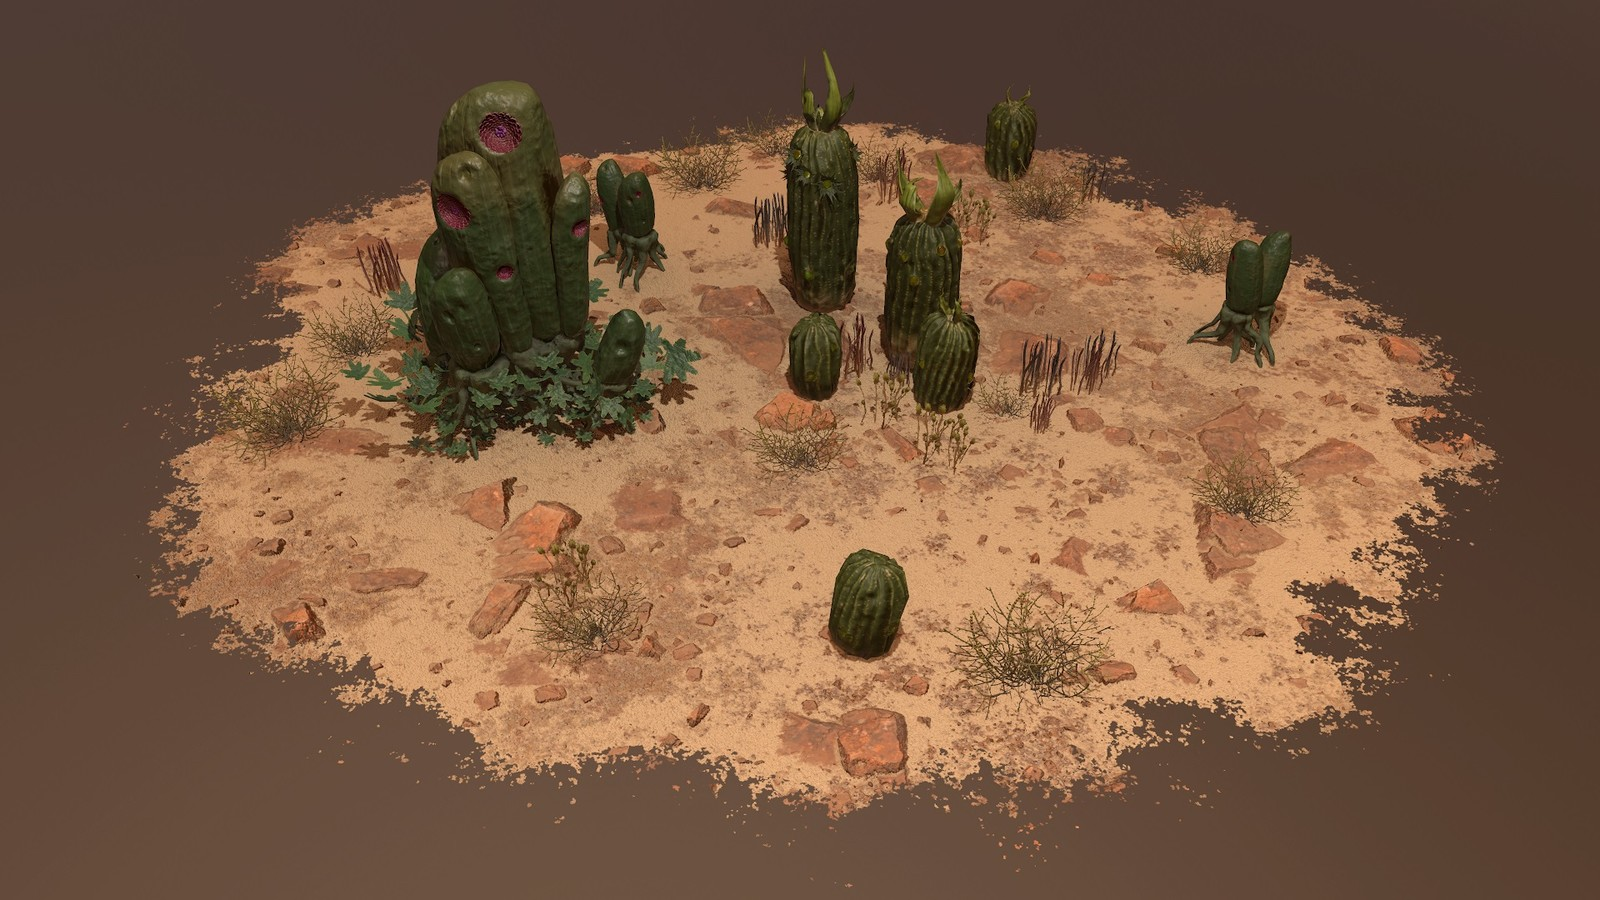 Environment - Desert with cactus